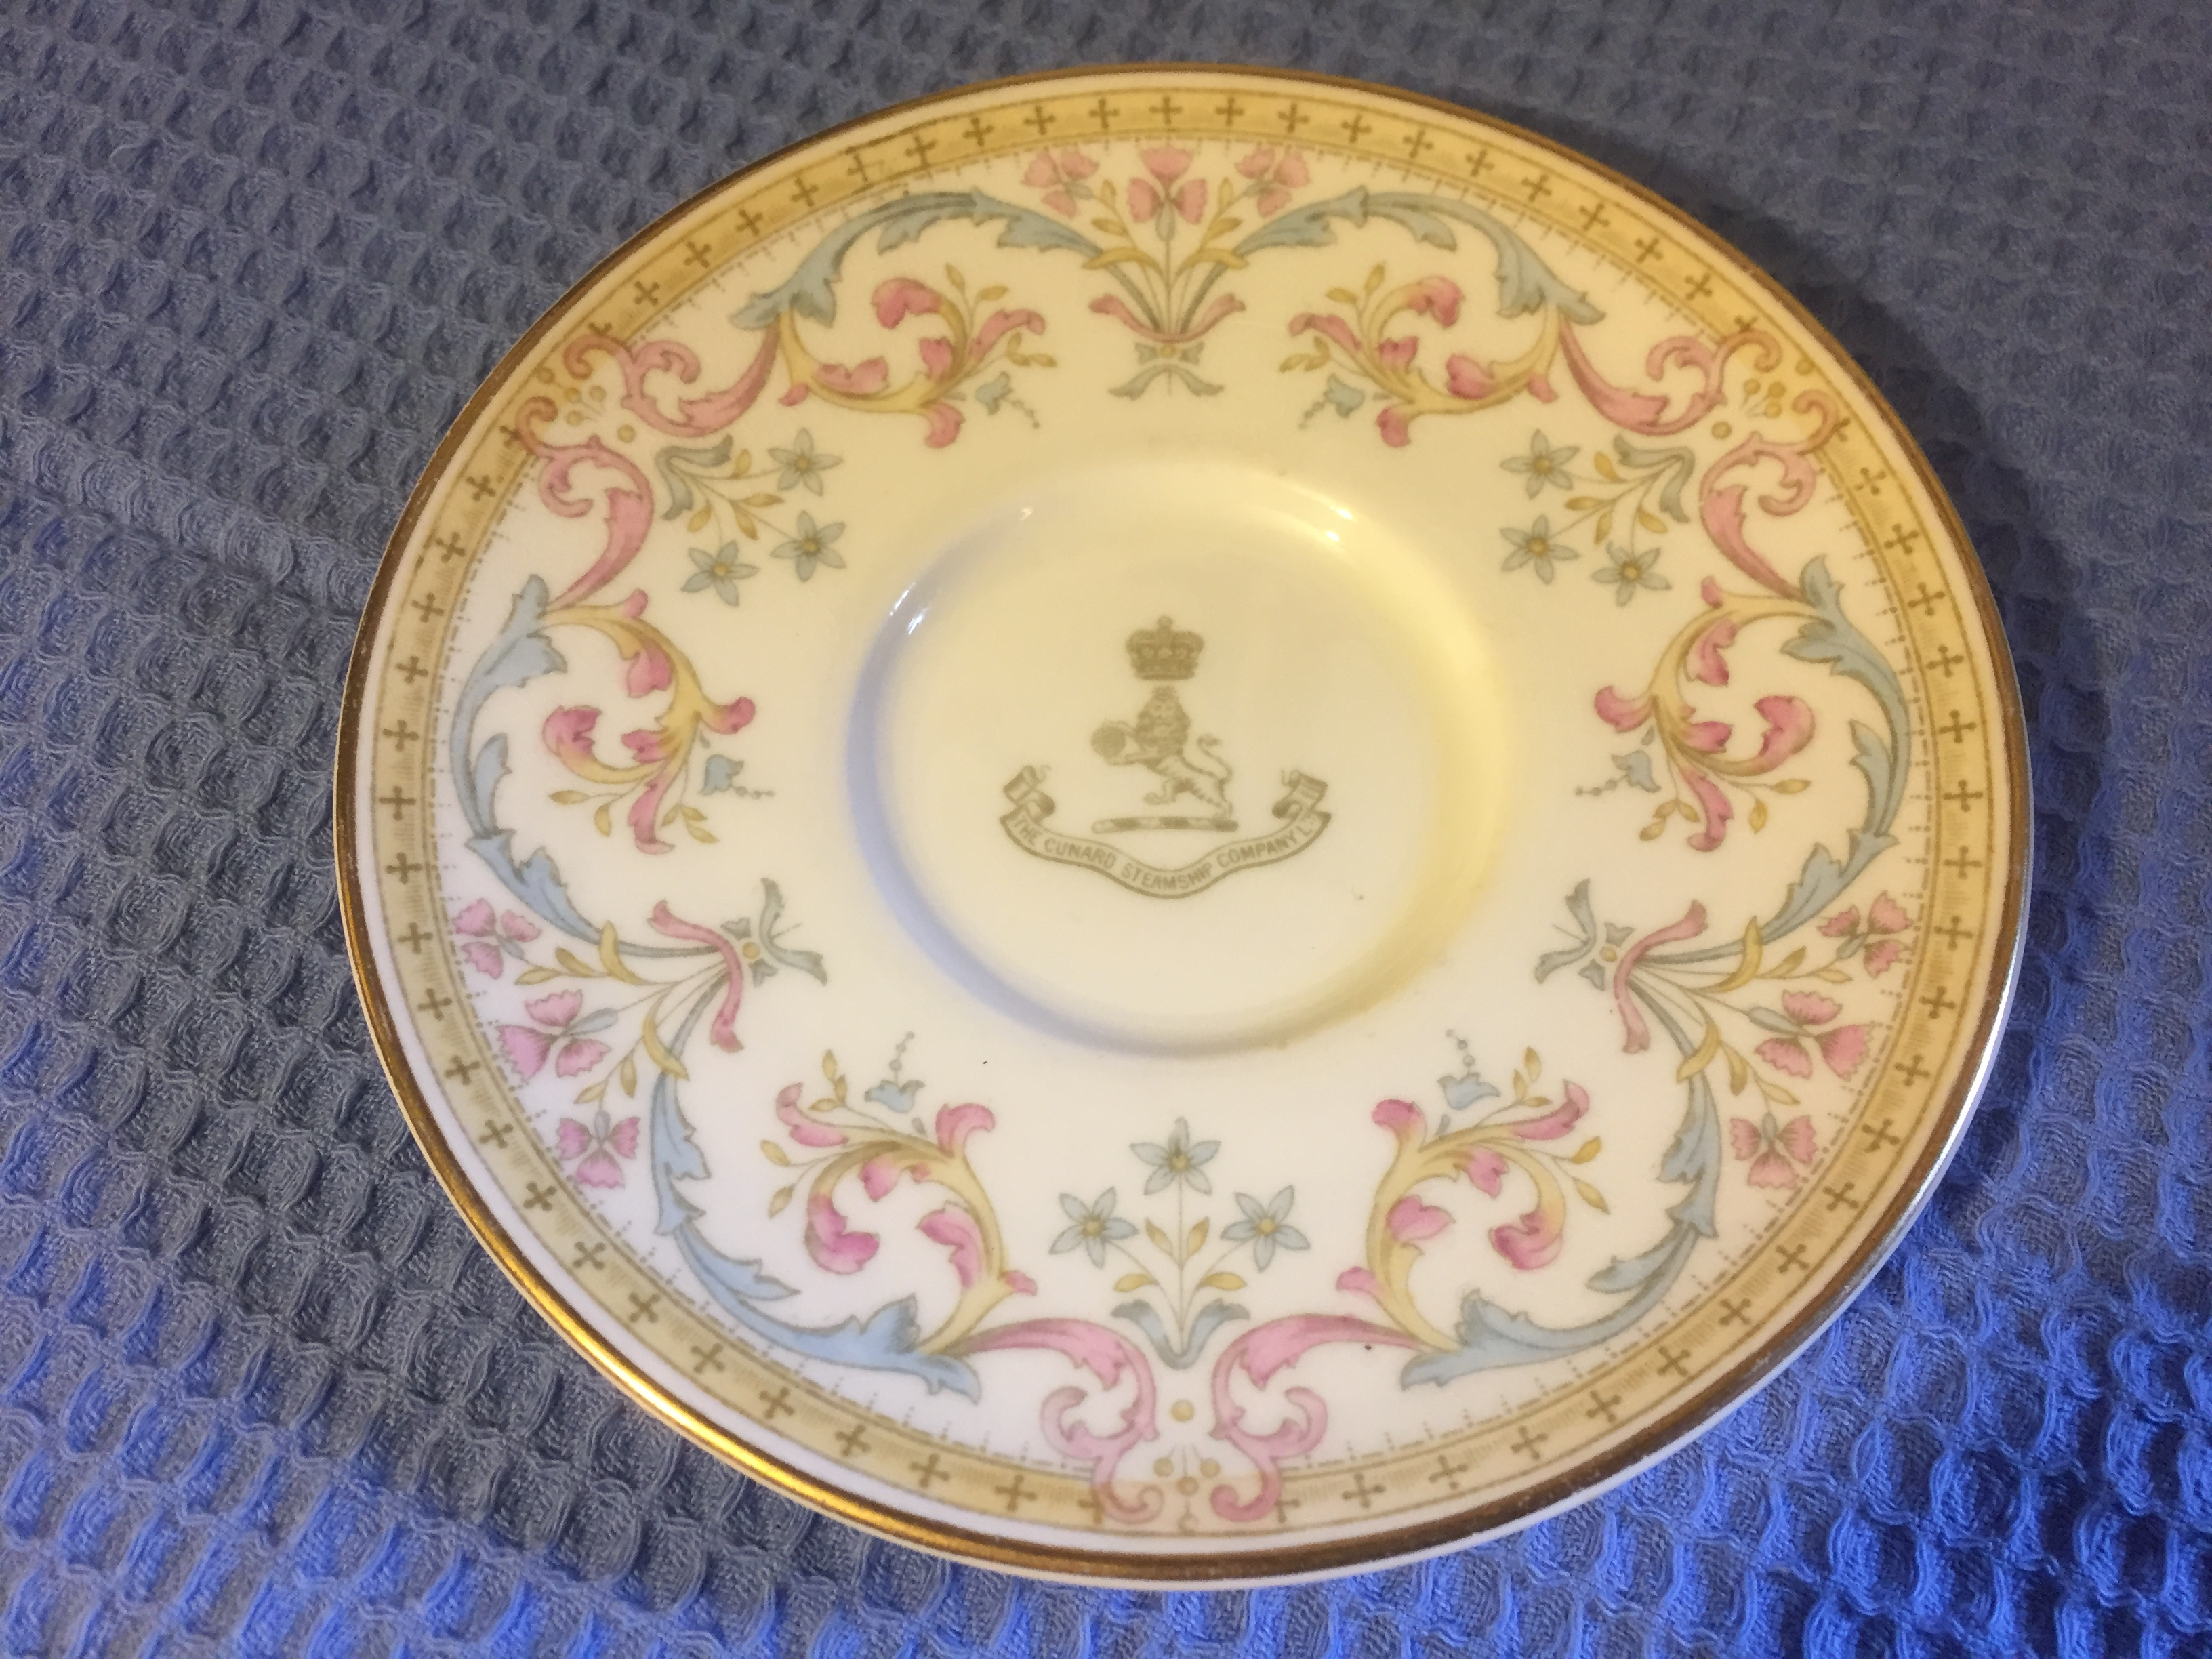 VERY RARE CUNARD LINE SAUCER PRODUCED IN ORIGINAL FIRST DESIGN STYLE